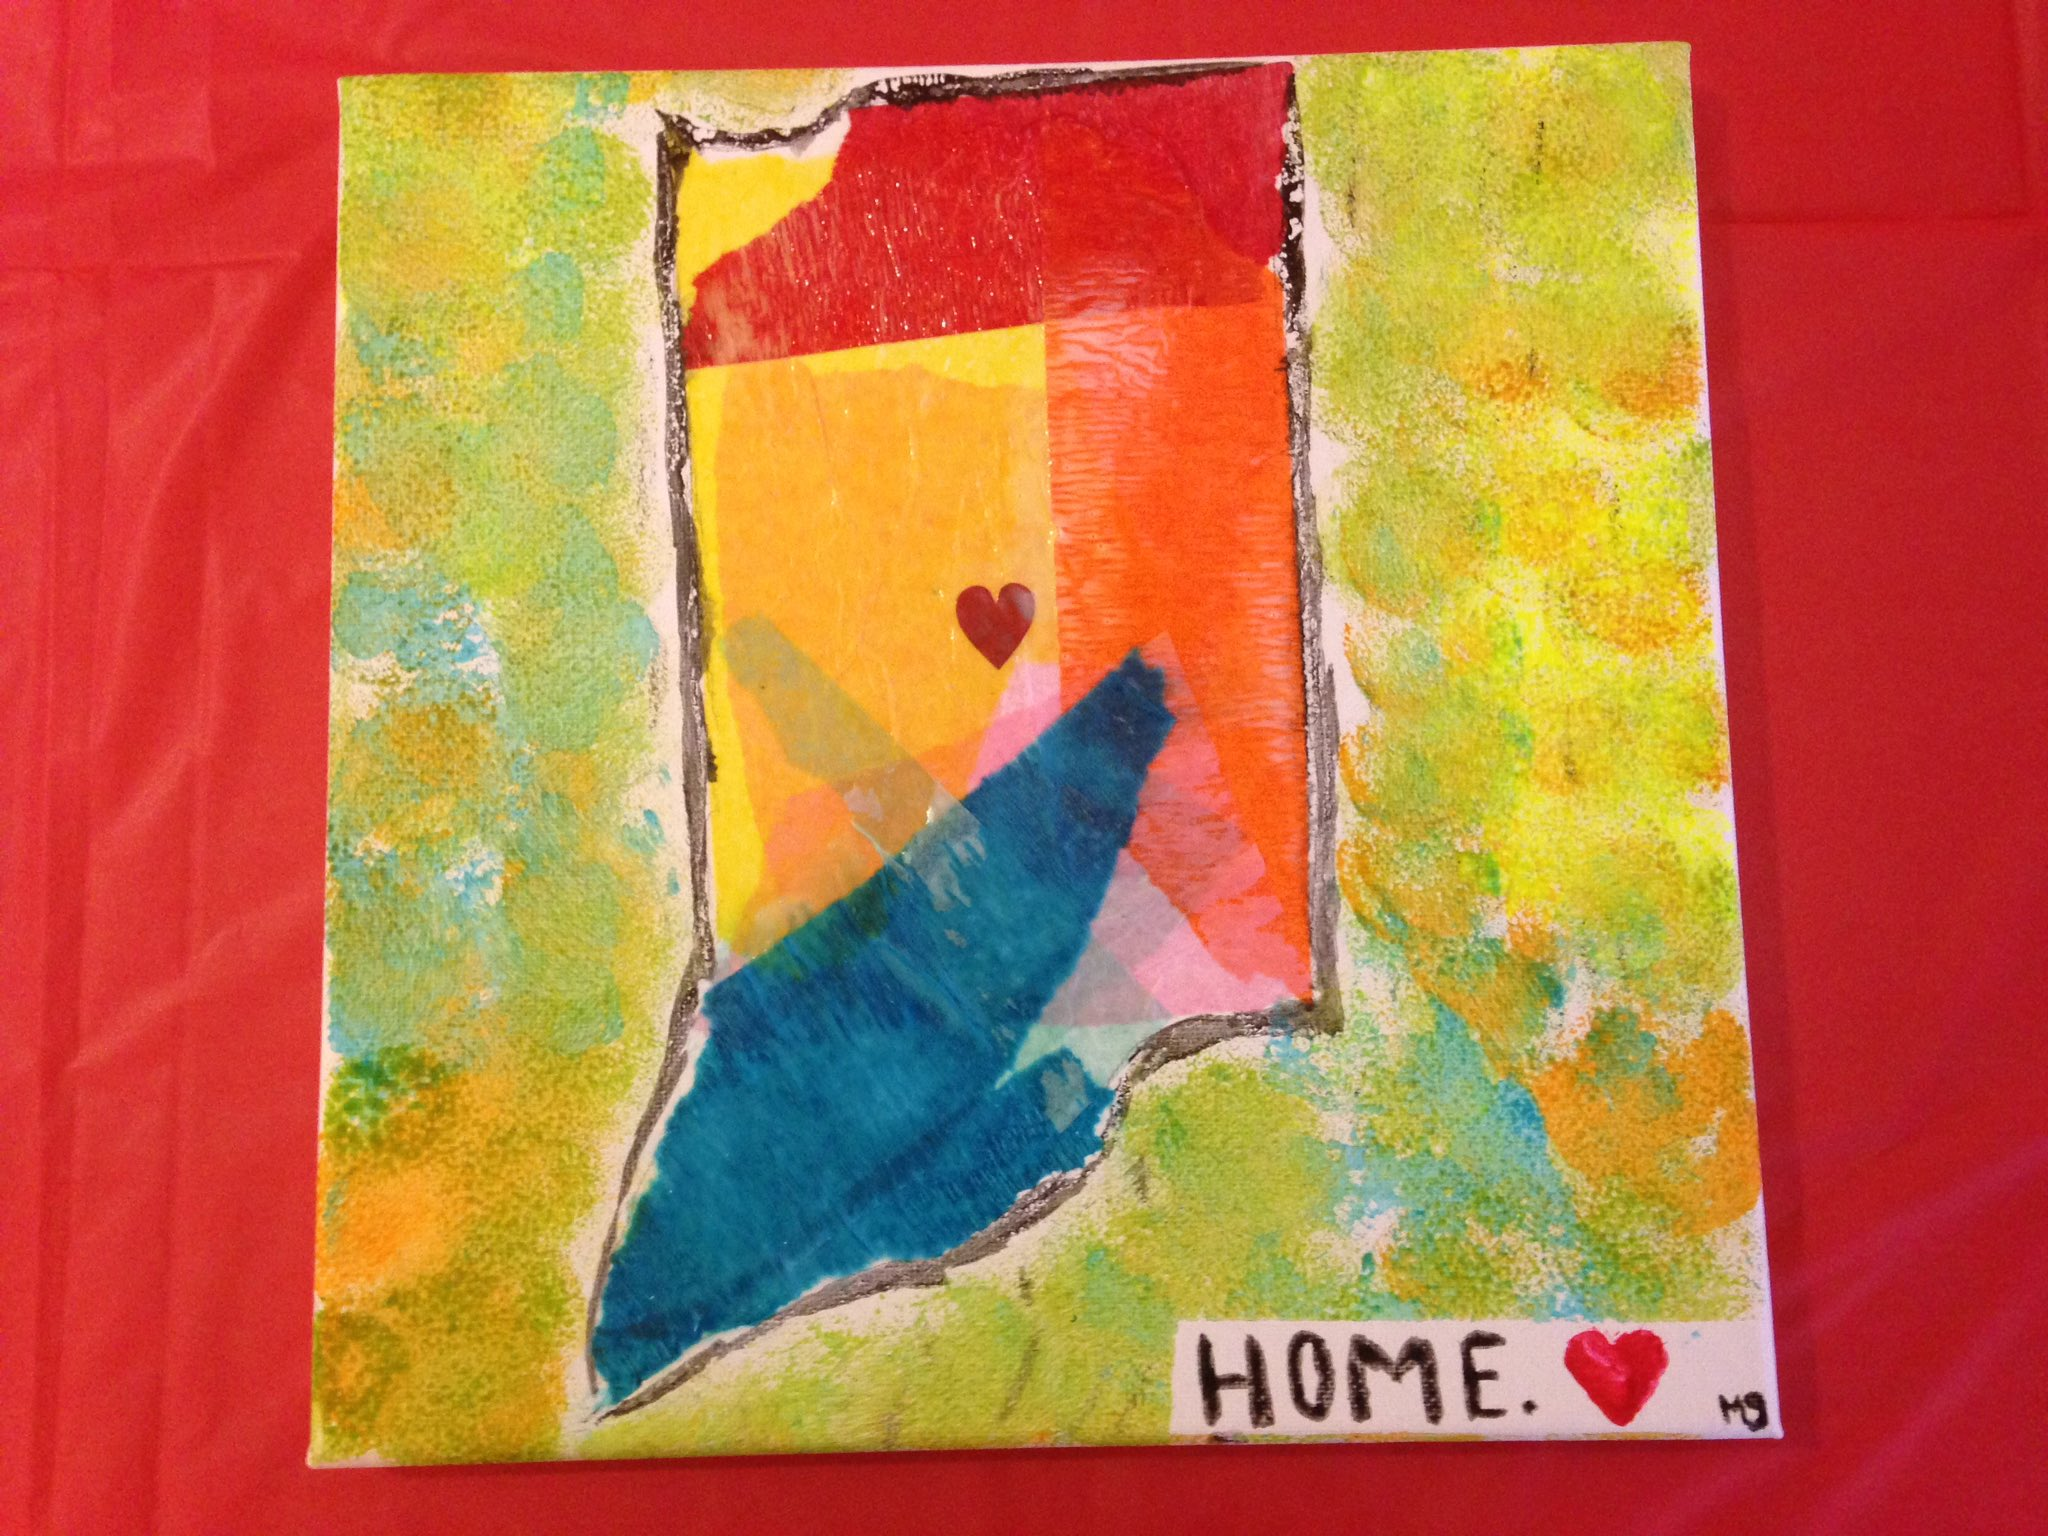 Audience art inspired by home from our Refugees Welcome event. #SPIndy https://t.co/2hXesuvL8a